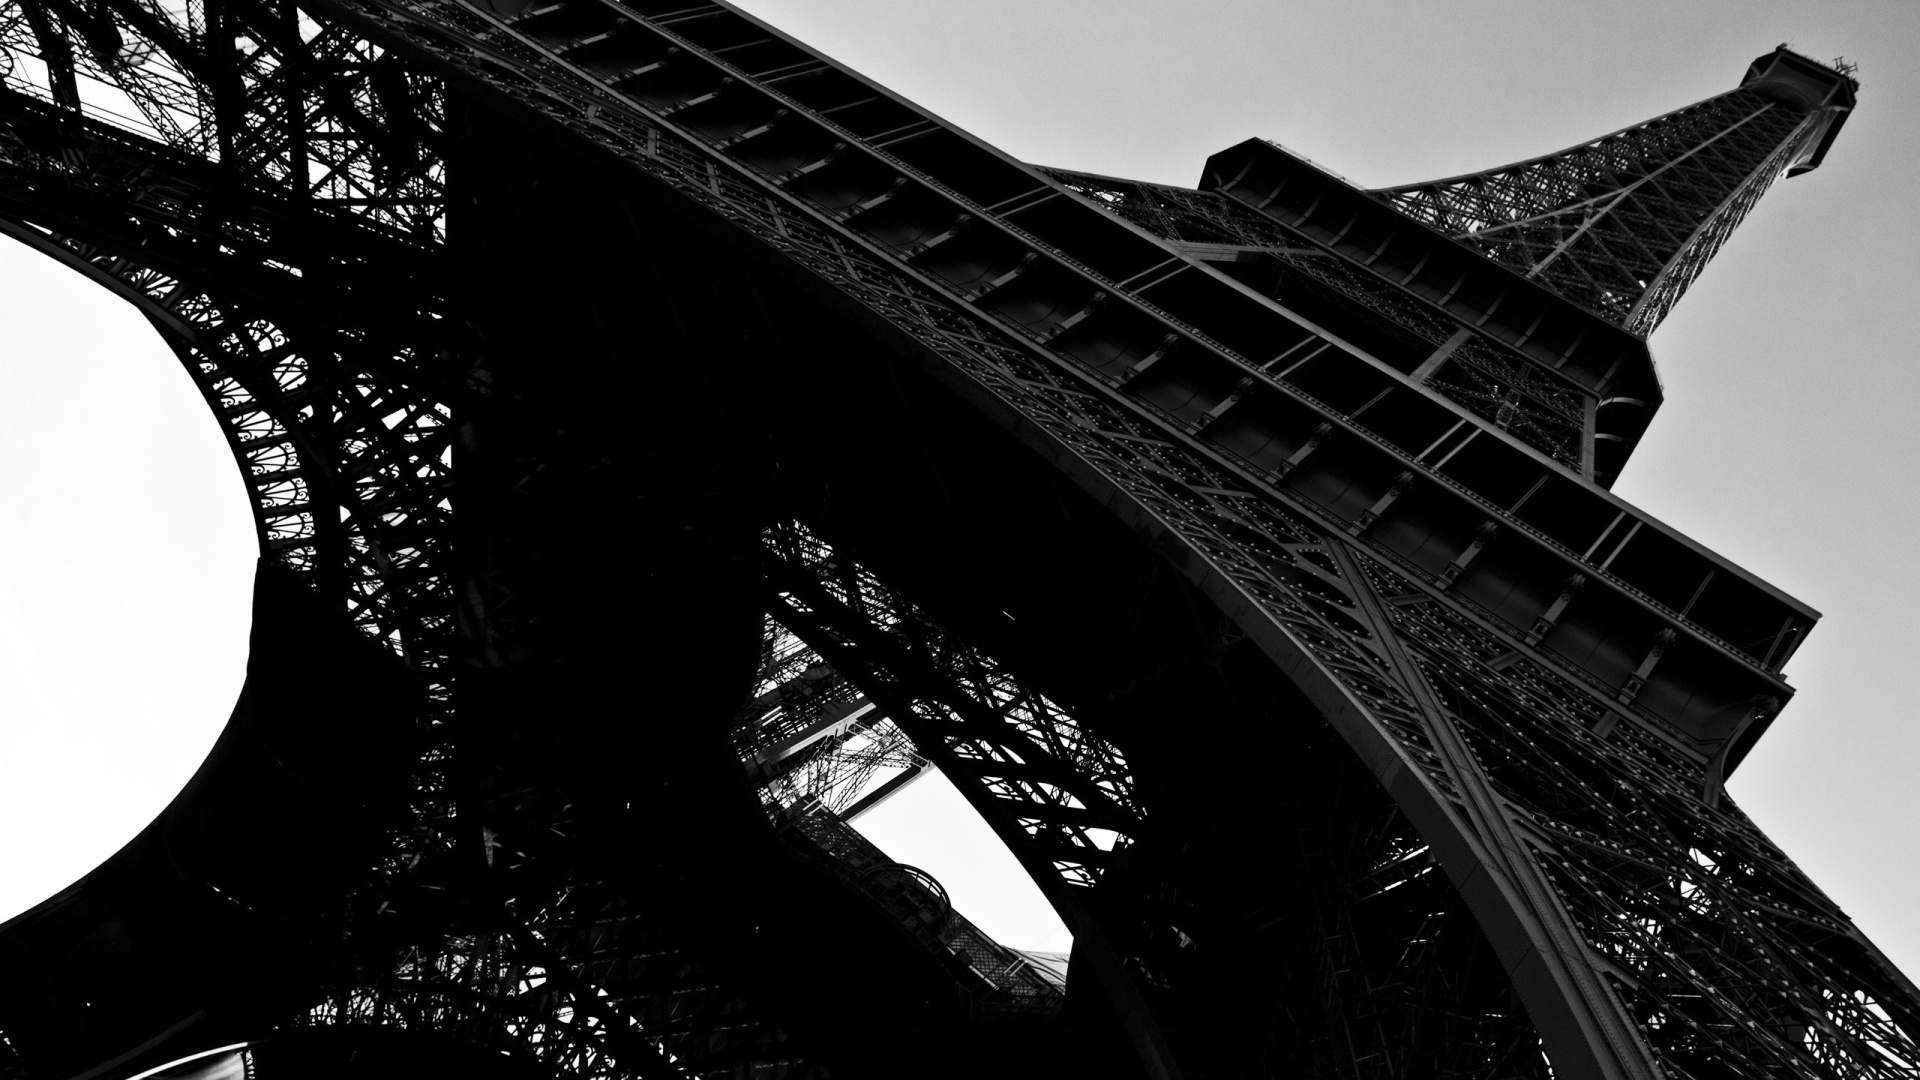 Eiffel Tower Black And White Desktop Wallpaper 1920x1080